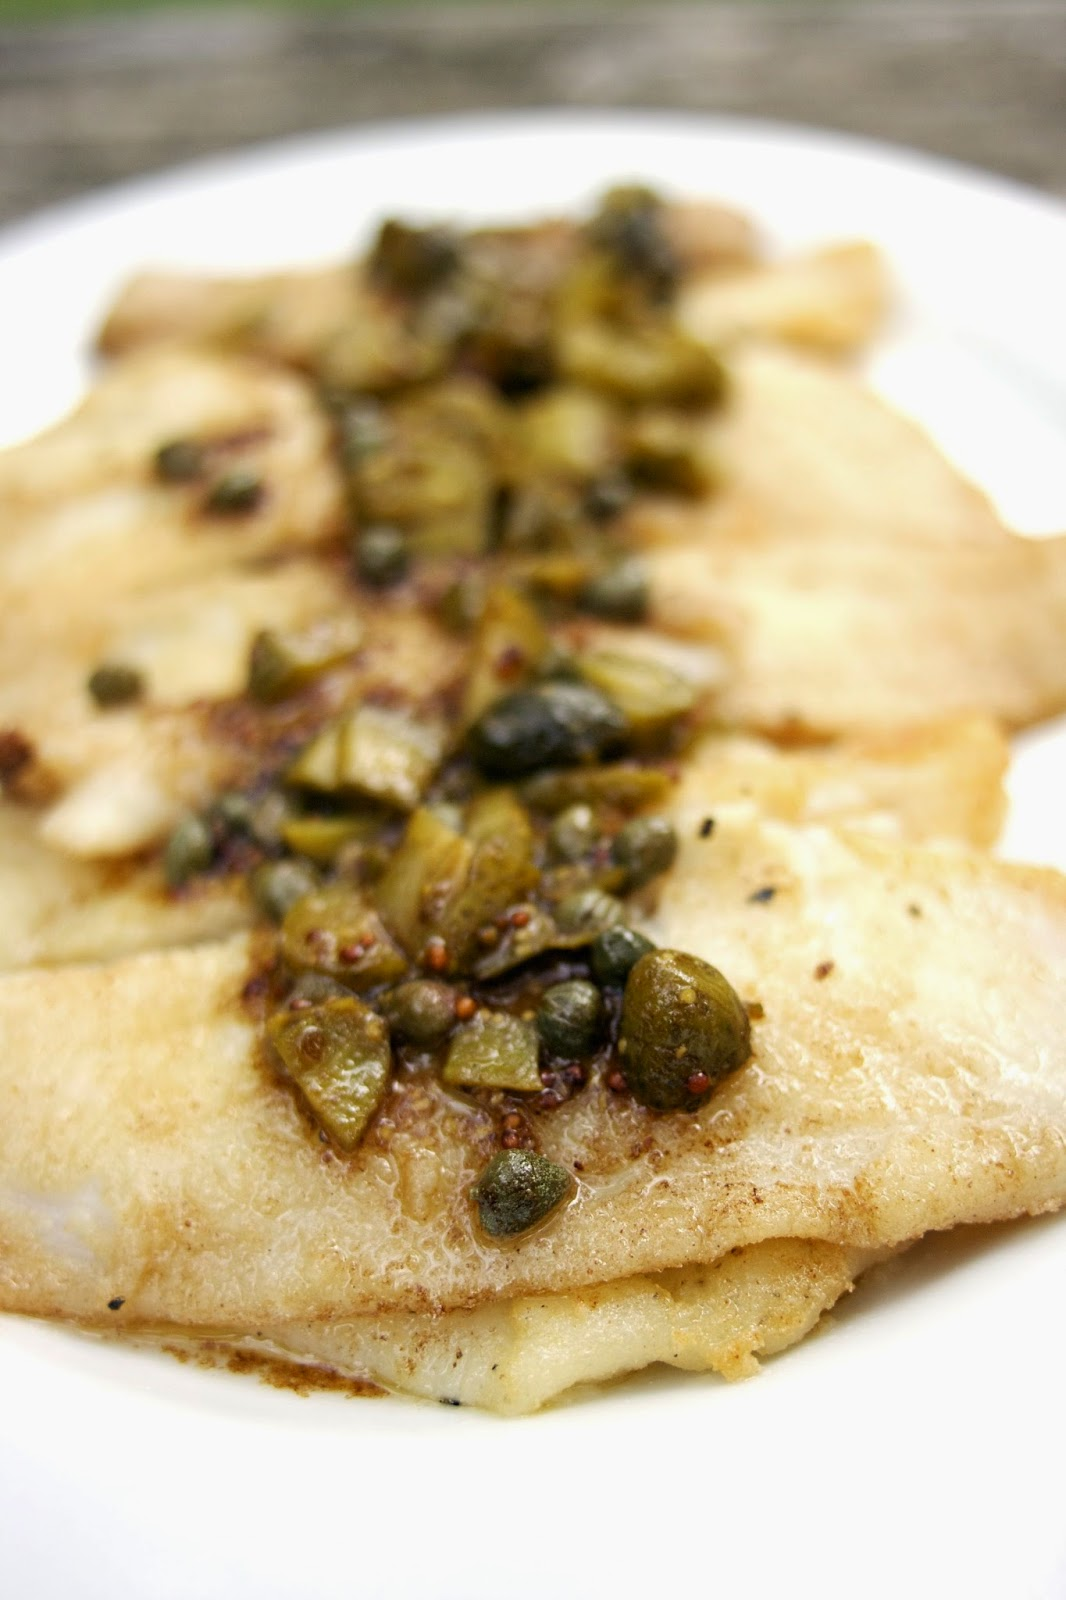 Sole with capers, cornichons and brown butter sauce- simplelivingeating.com